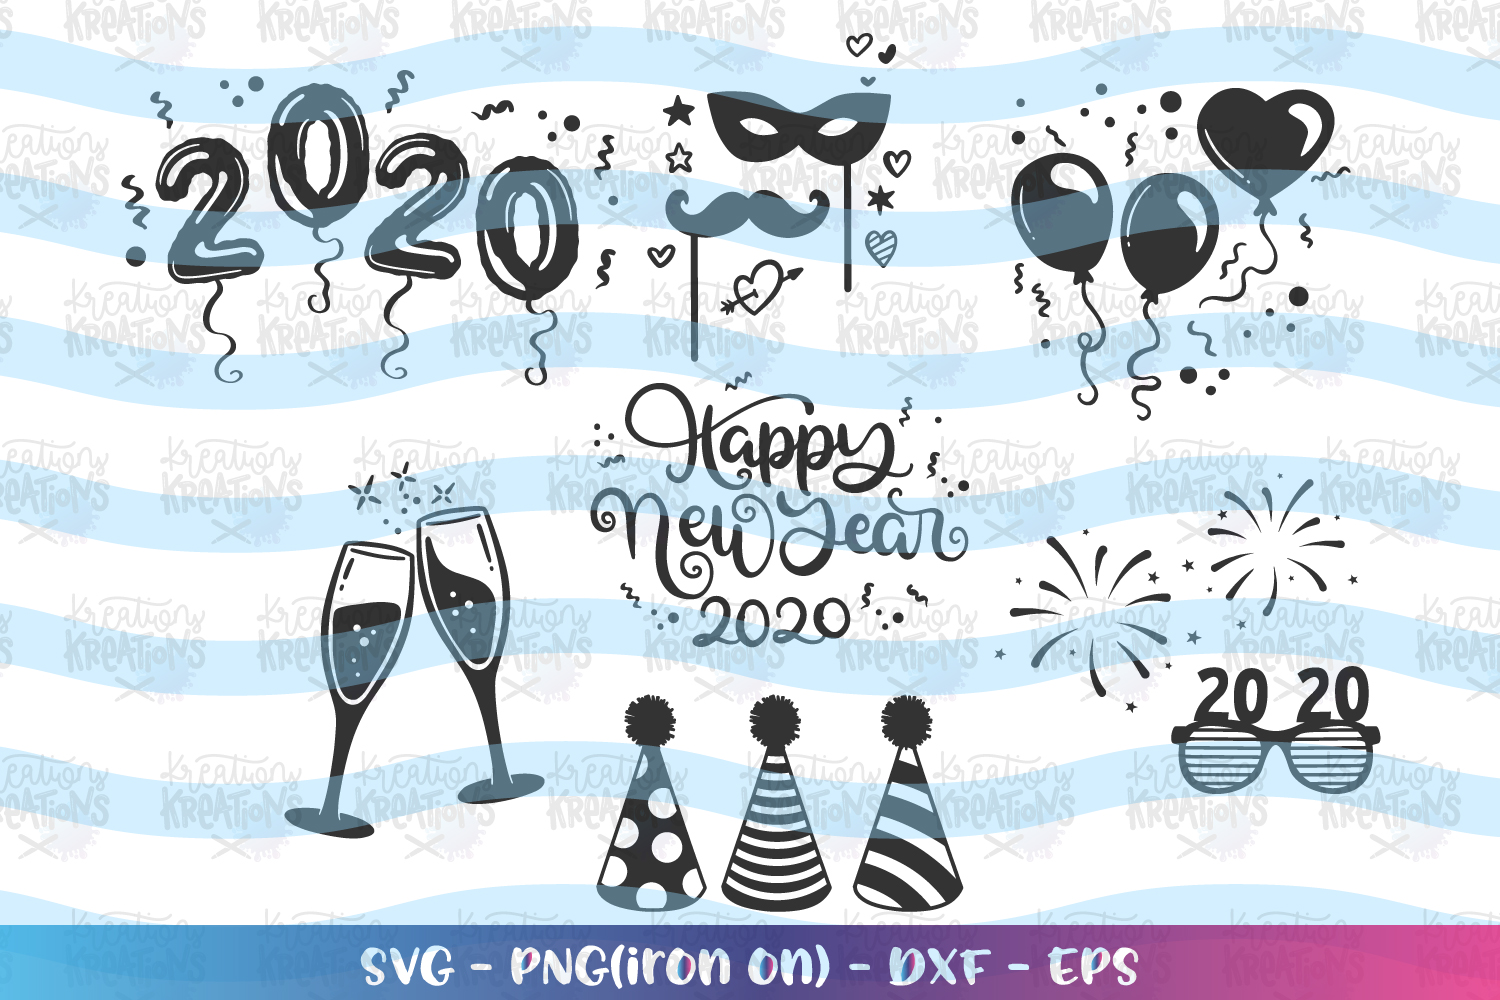 Happy New Year Elements svg 2020 clipart Party Hat balloons example image 1